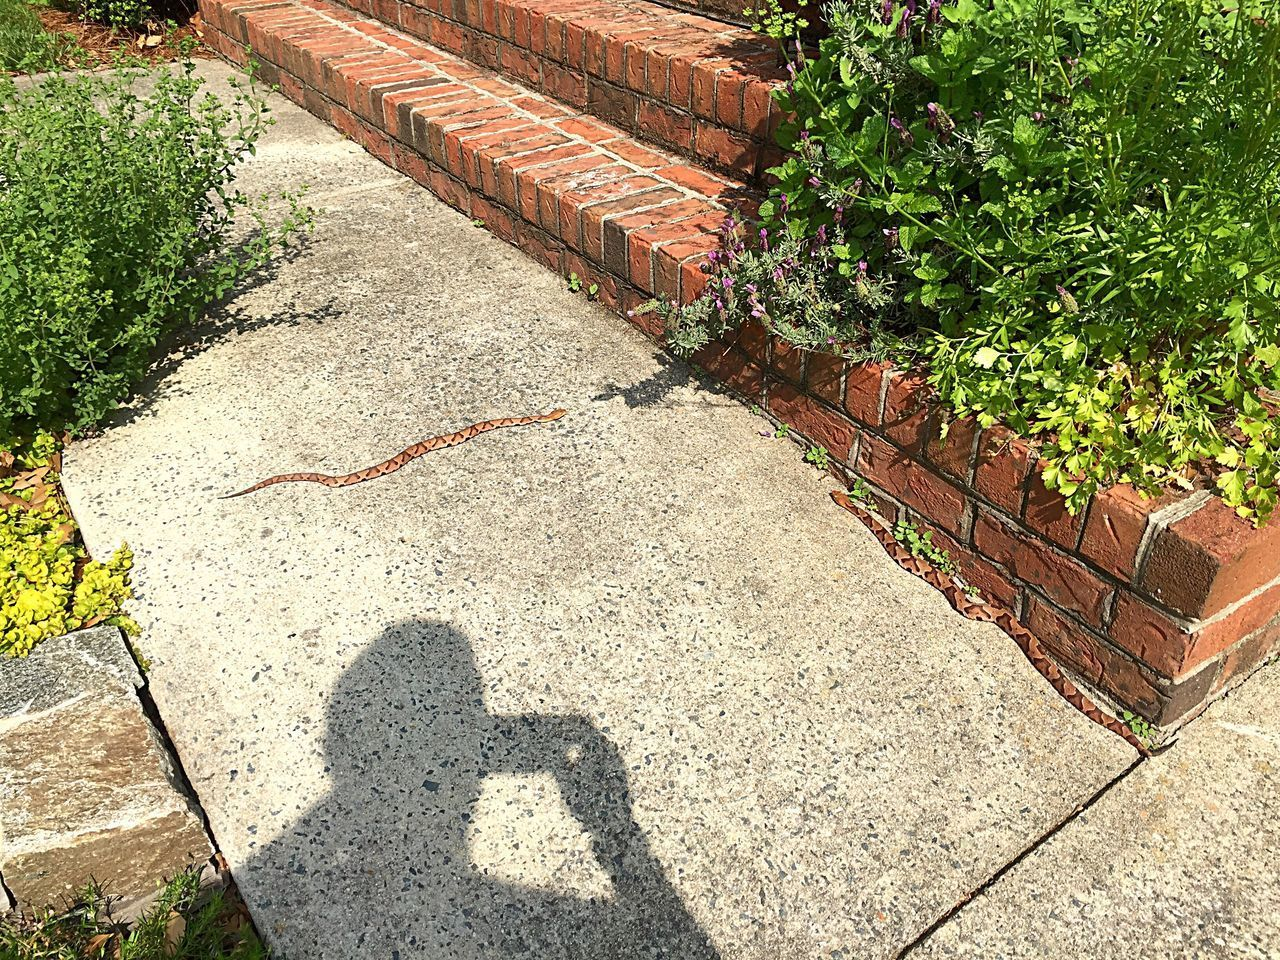 High Angle View Copperhead Babies Copper Hood Alley Outdoors Day Nature Reptile Poisonous Sunlight Shadow One Person